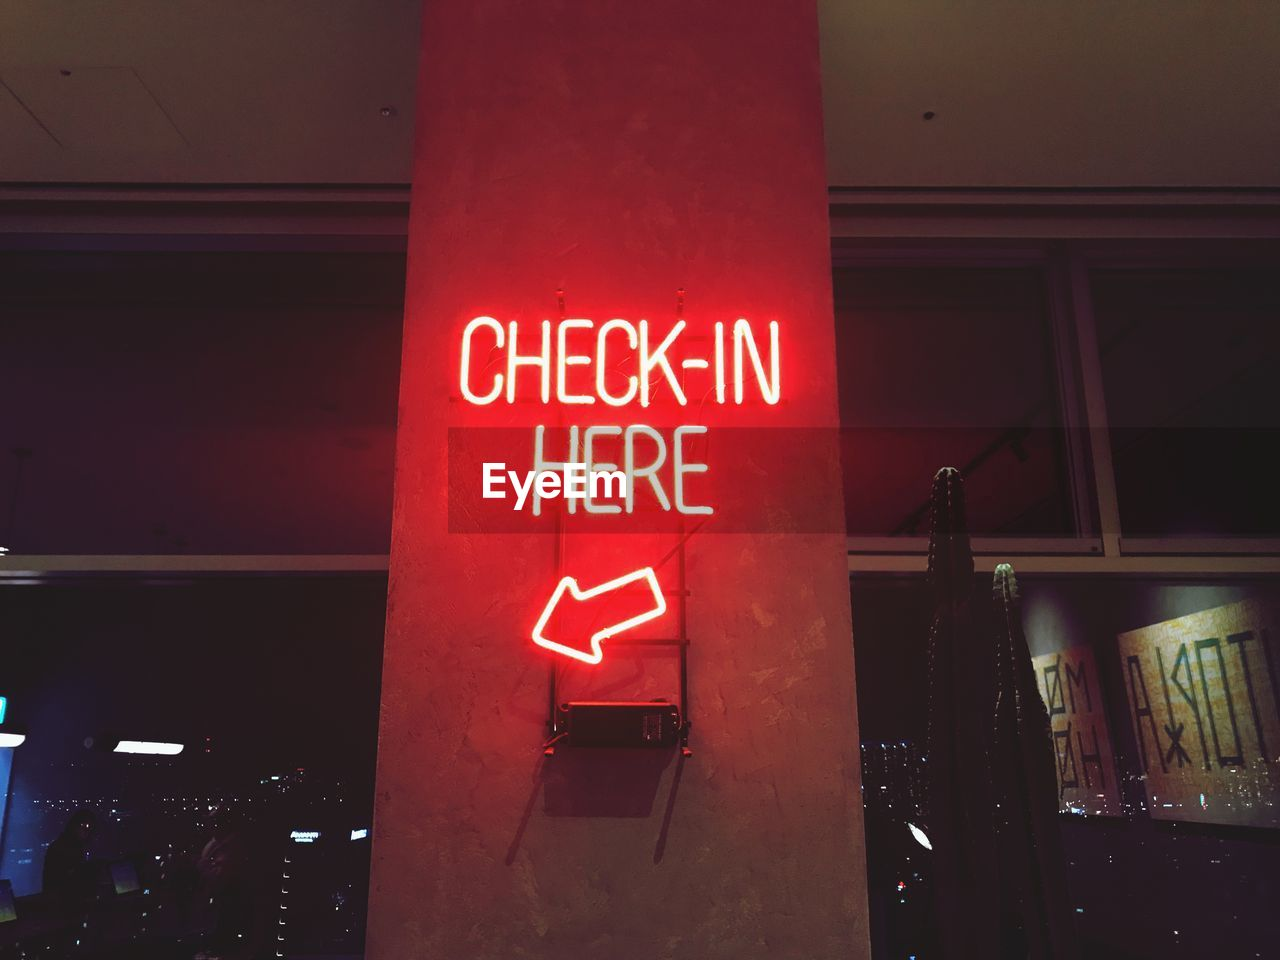 text, communication, illuminated, western script, red, architecture, sign, night, capital letter, built structure, no people, building exterior, information, lighting equipment, neon, city, low angle view, information sign, wall - building feature, ceiling, parking garage, message